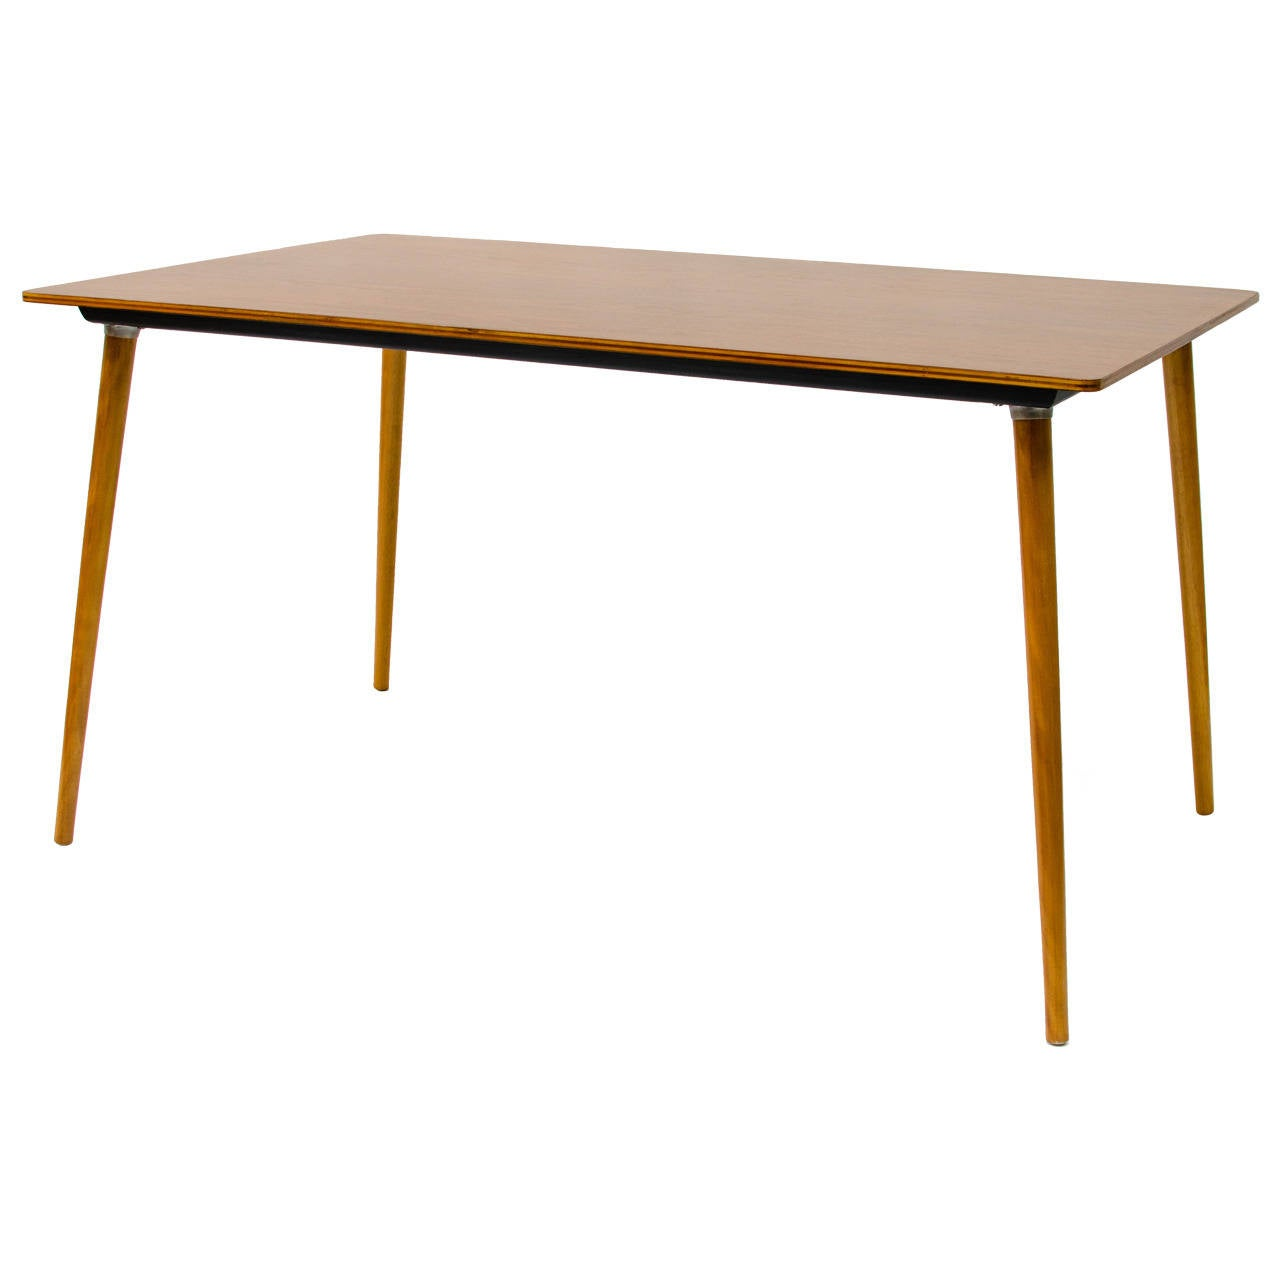 Eames dtw 3 wood leg dining table at 1stdibs for One leg dining table